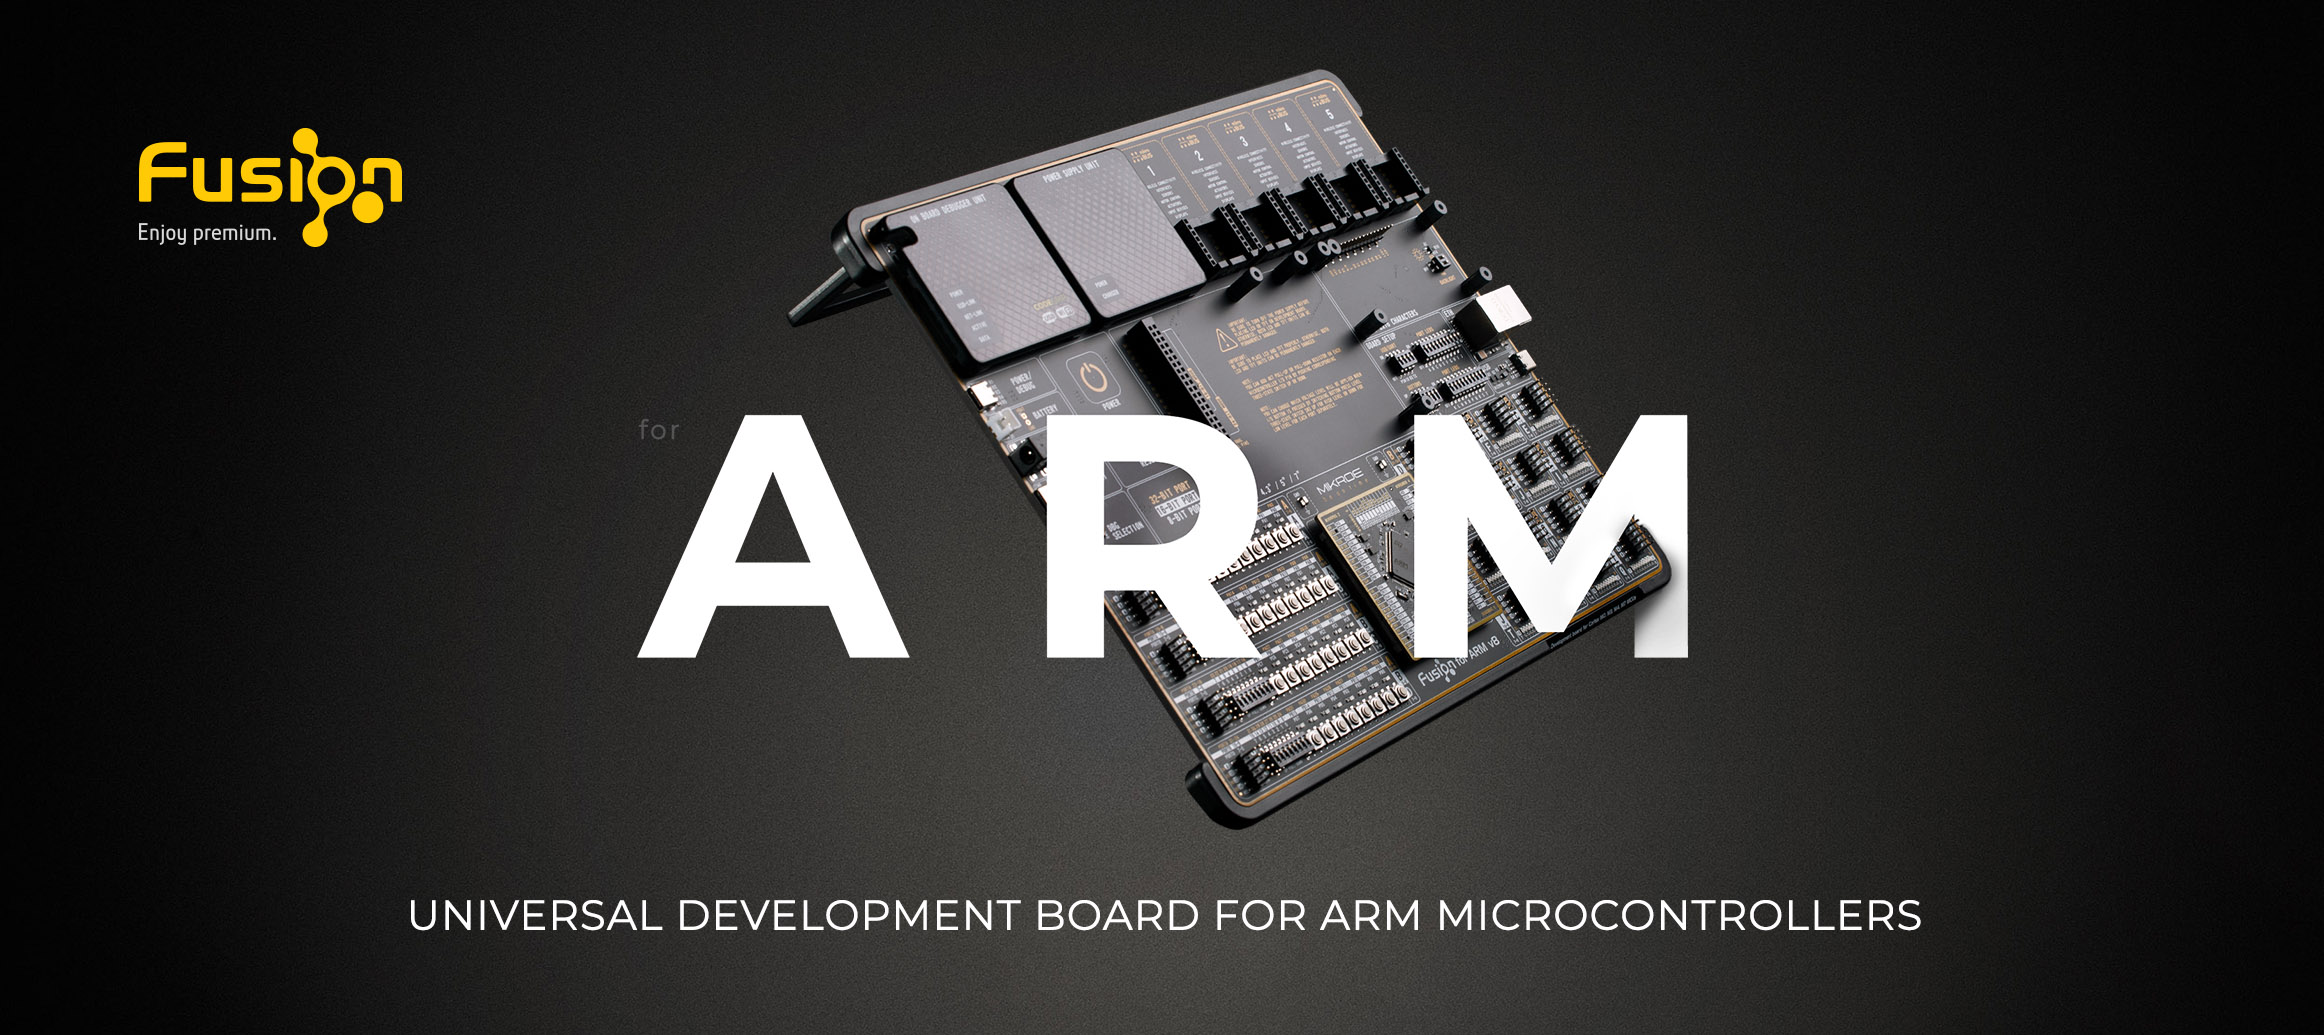 Fusion for Arm Development board